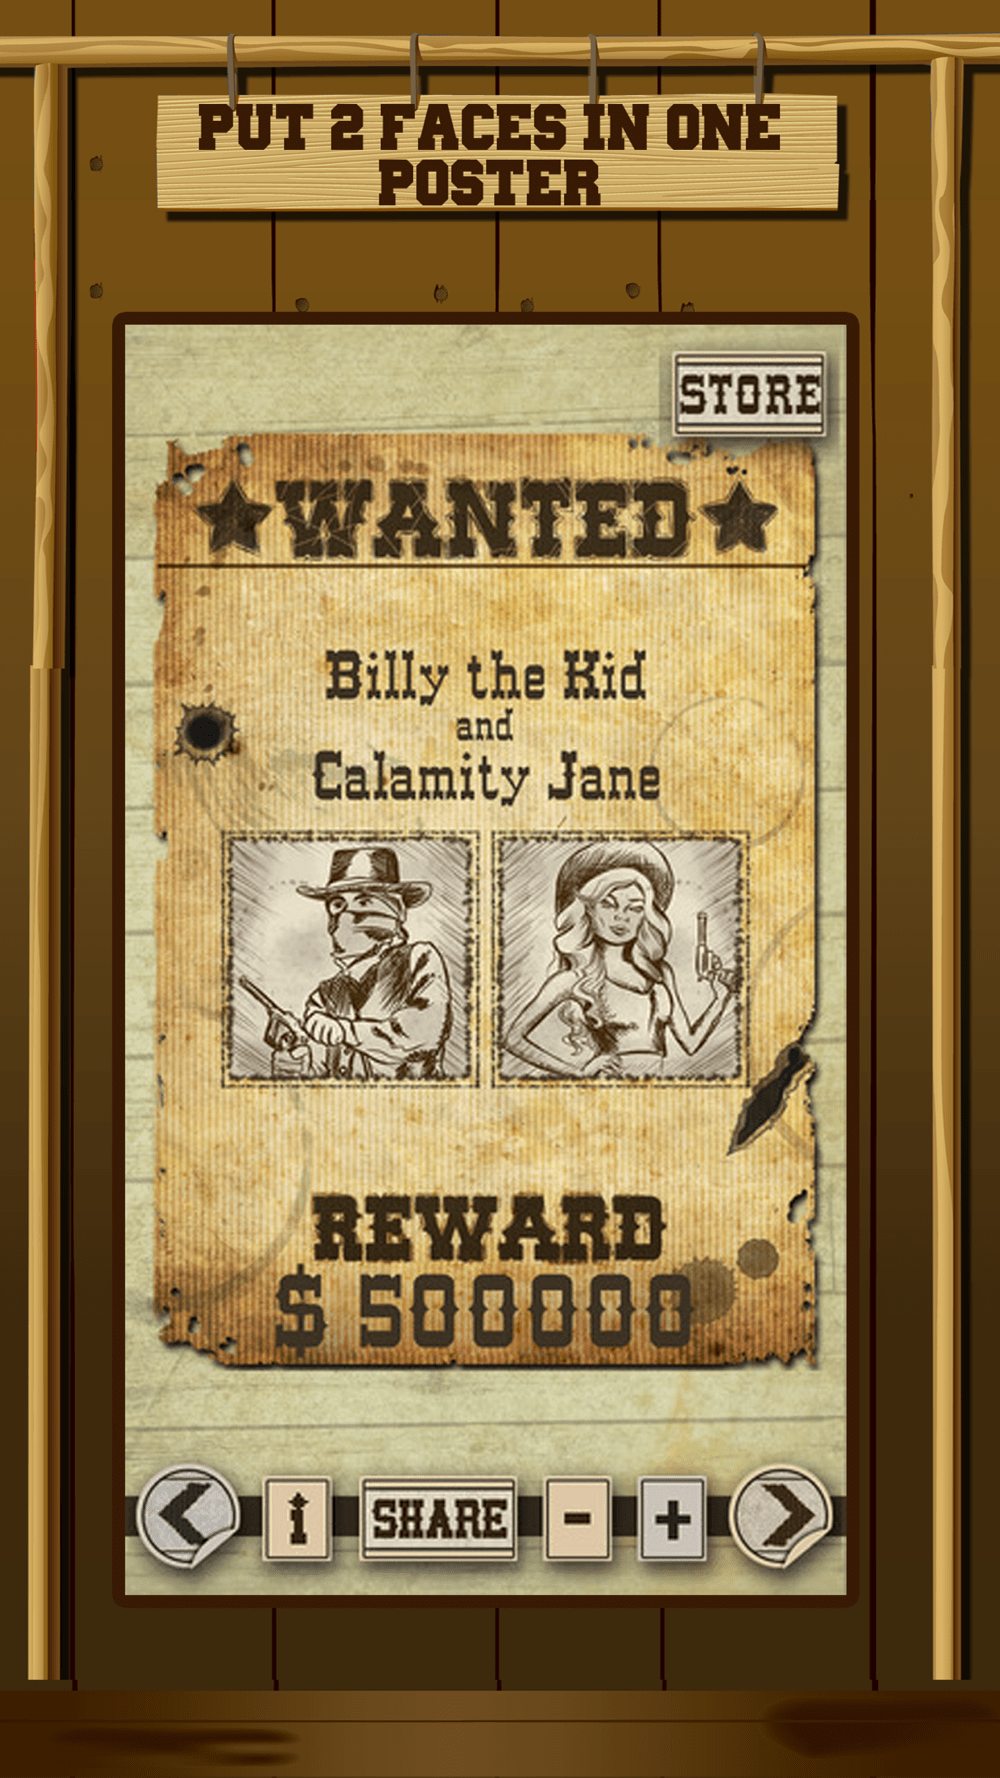 wild west wanted poster maker make your own wild west outlaw photo mug shots free download app for iphone steprimo com